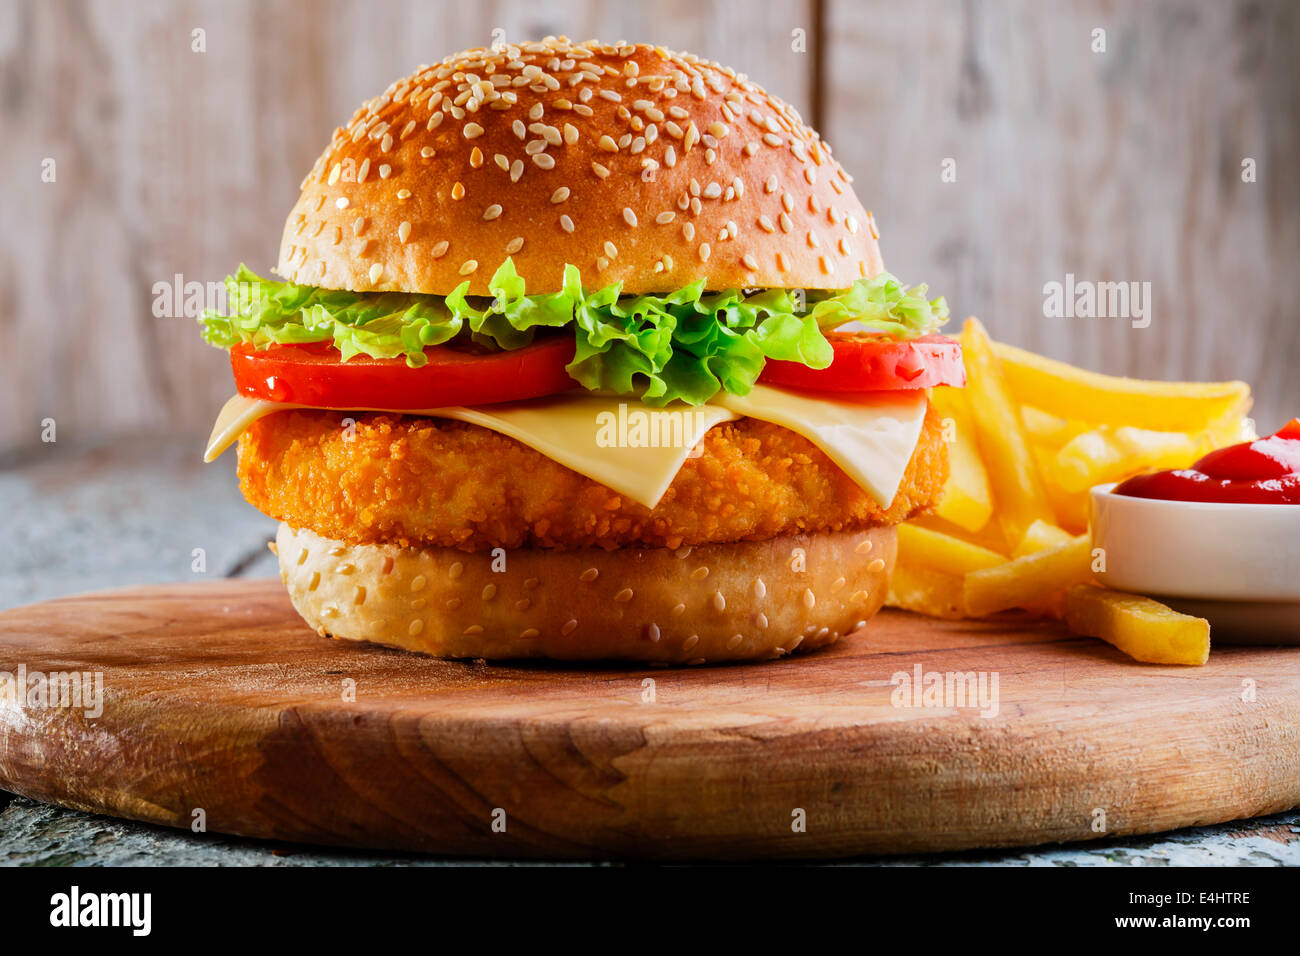 hamburger with cutlet breaded - Stock Image